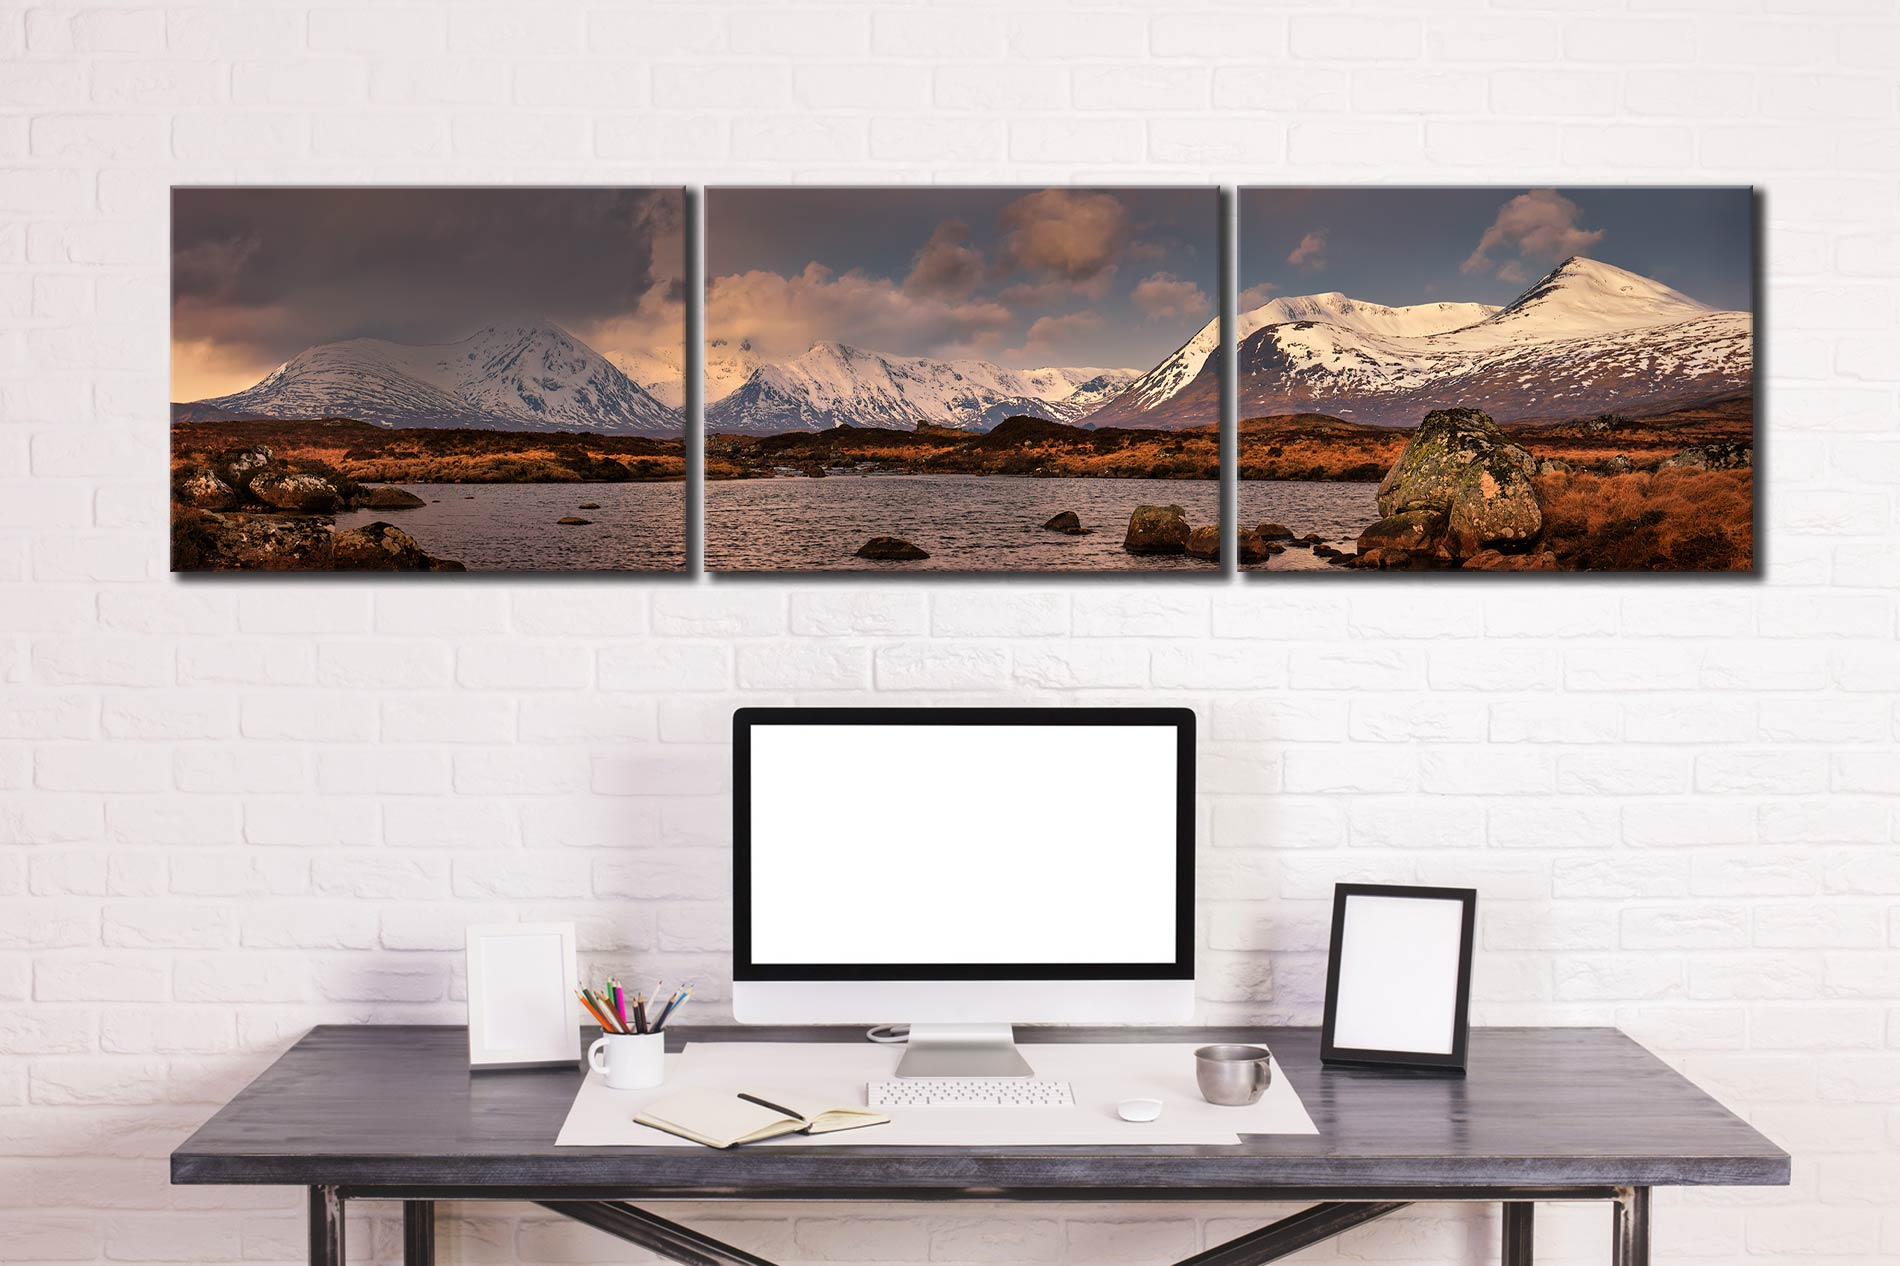 Loch Stainge From Rannock Moor - 3 Panel Canvas on Wall